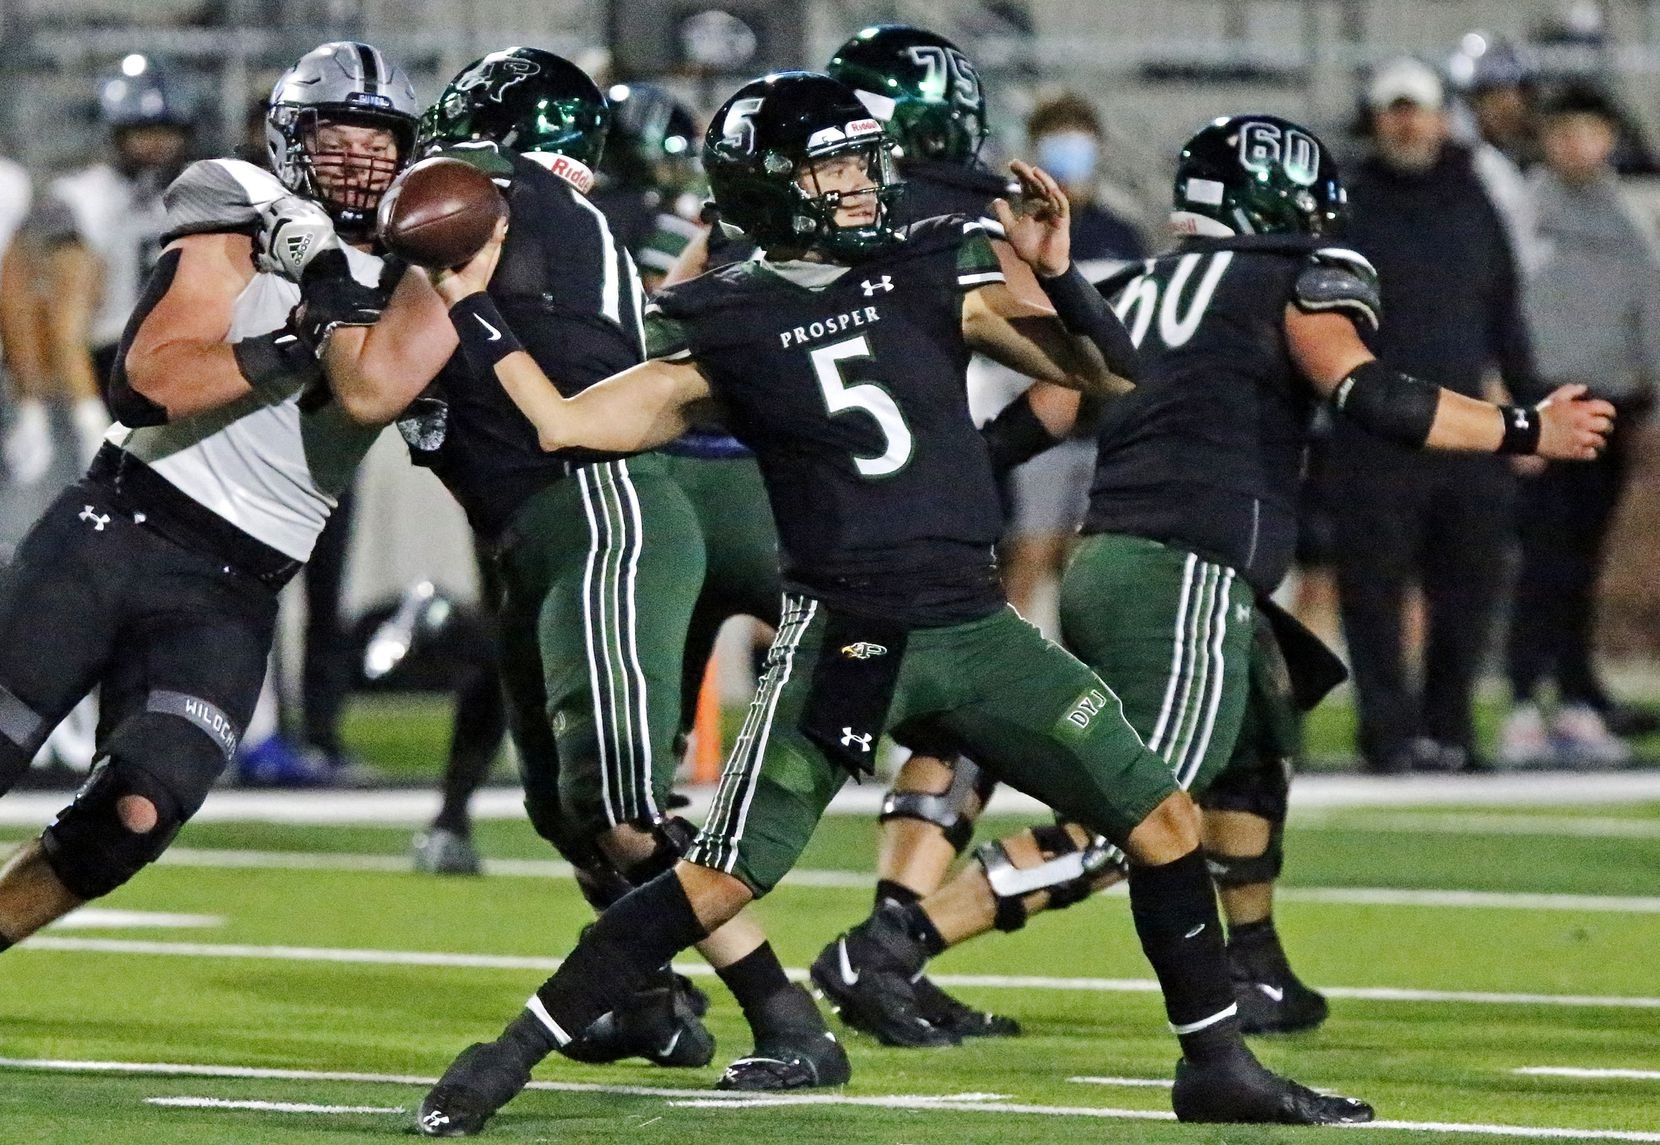 Prosper High School quarterback Jackson Berry (5) throws a pass during the first half as Prosper High School hosted Denton Guyer High School in a District 5-6A football game at Children's Health Stadium in Prosper on Friday night, October 30, 2020. (Stewart F. House/Special Contributor)